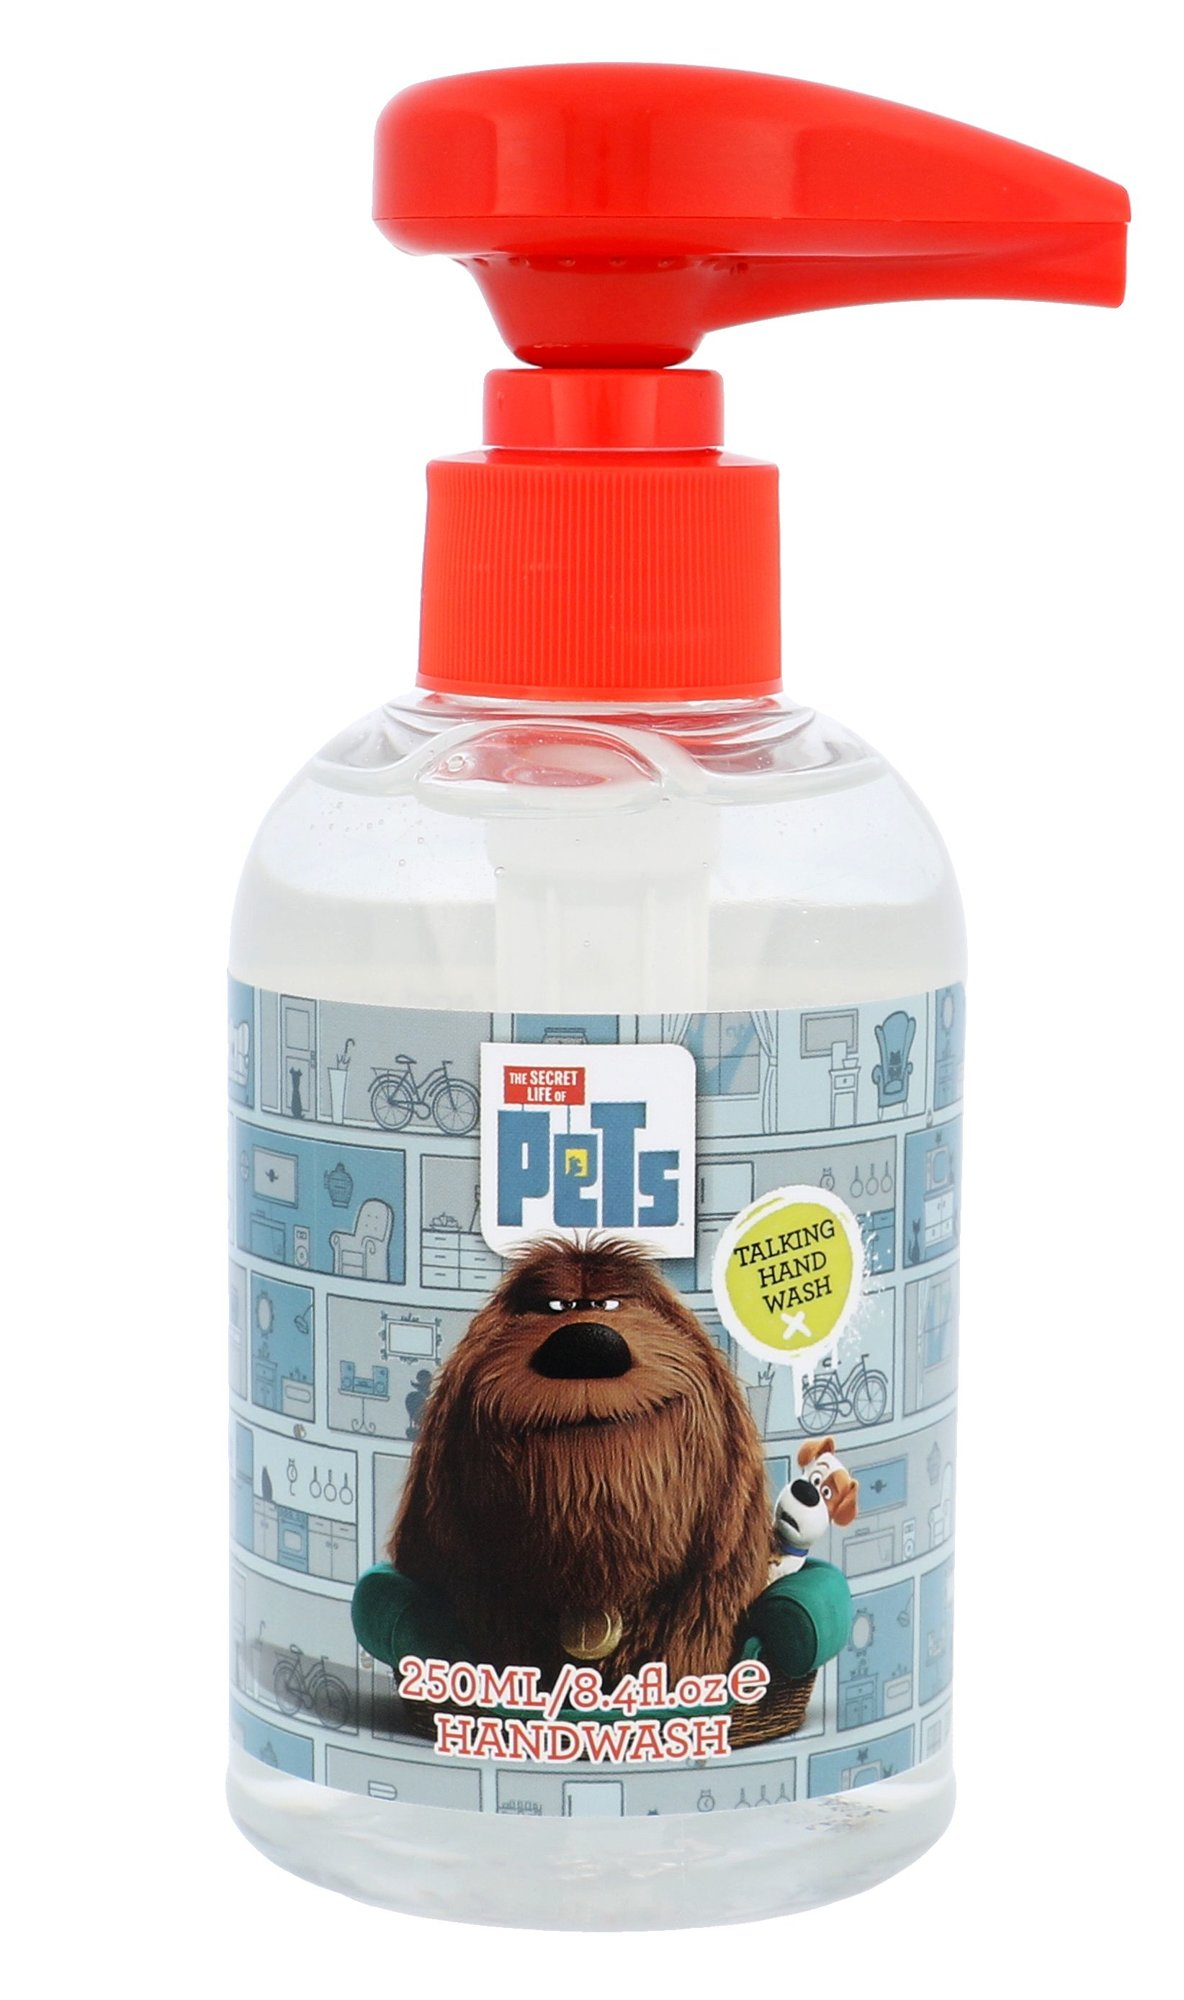 Universal The Secret Life Of Pets Talking Hand Wash Cosmetic 250ml